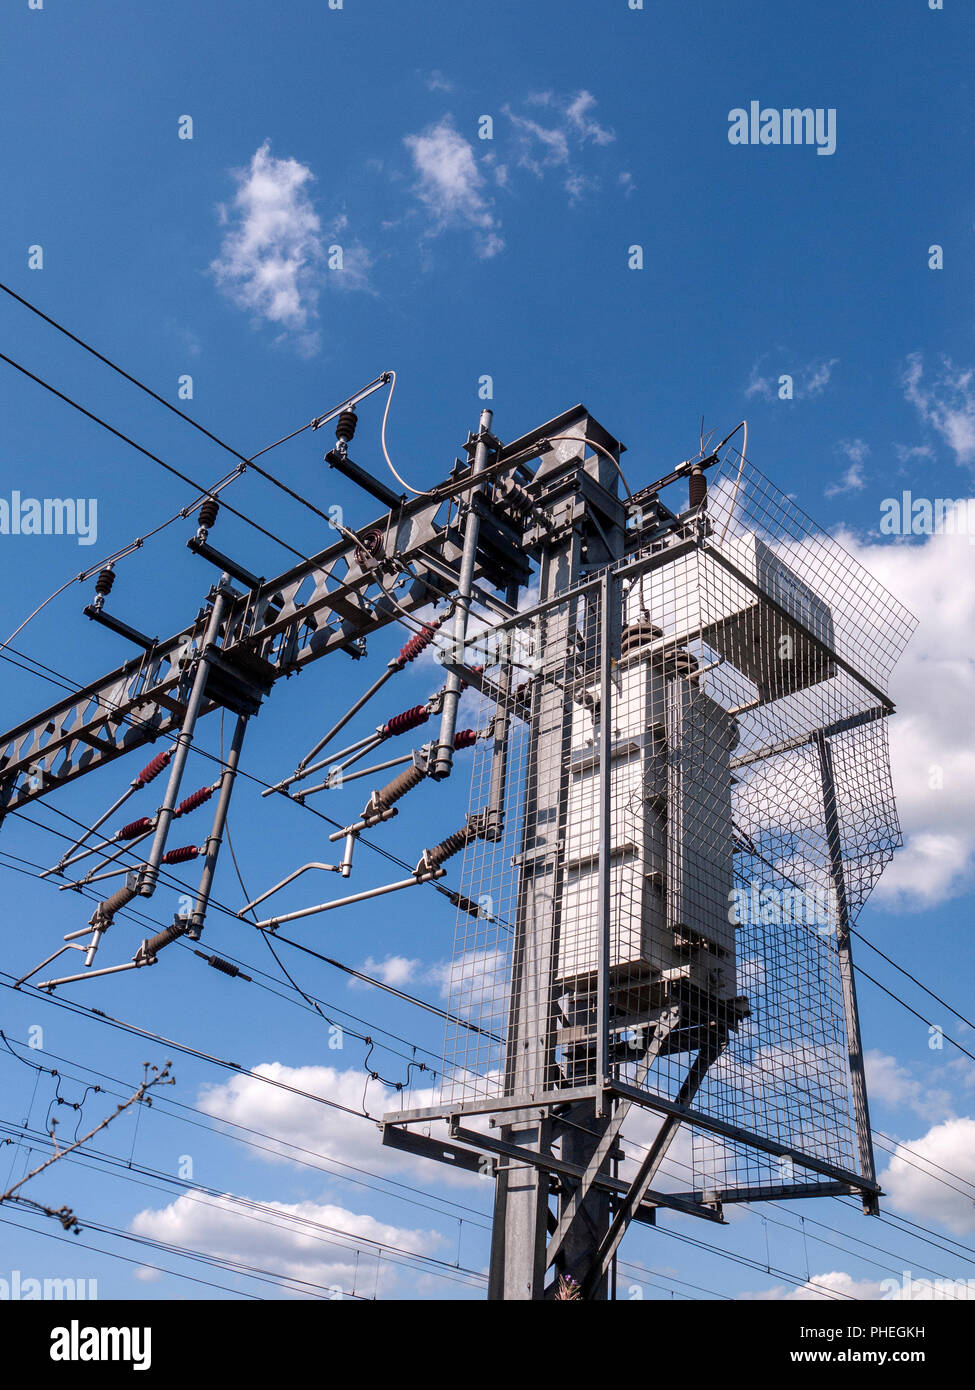 Train Supply Stock Photos Amp Train Supply Stock Images Alamy